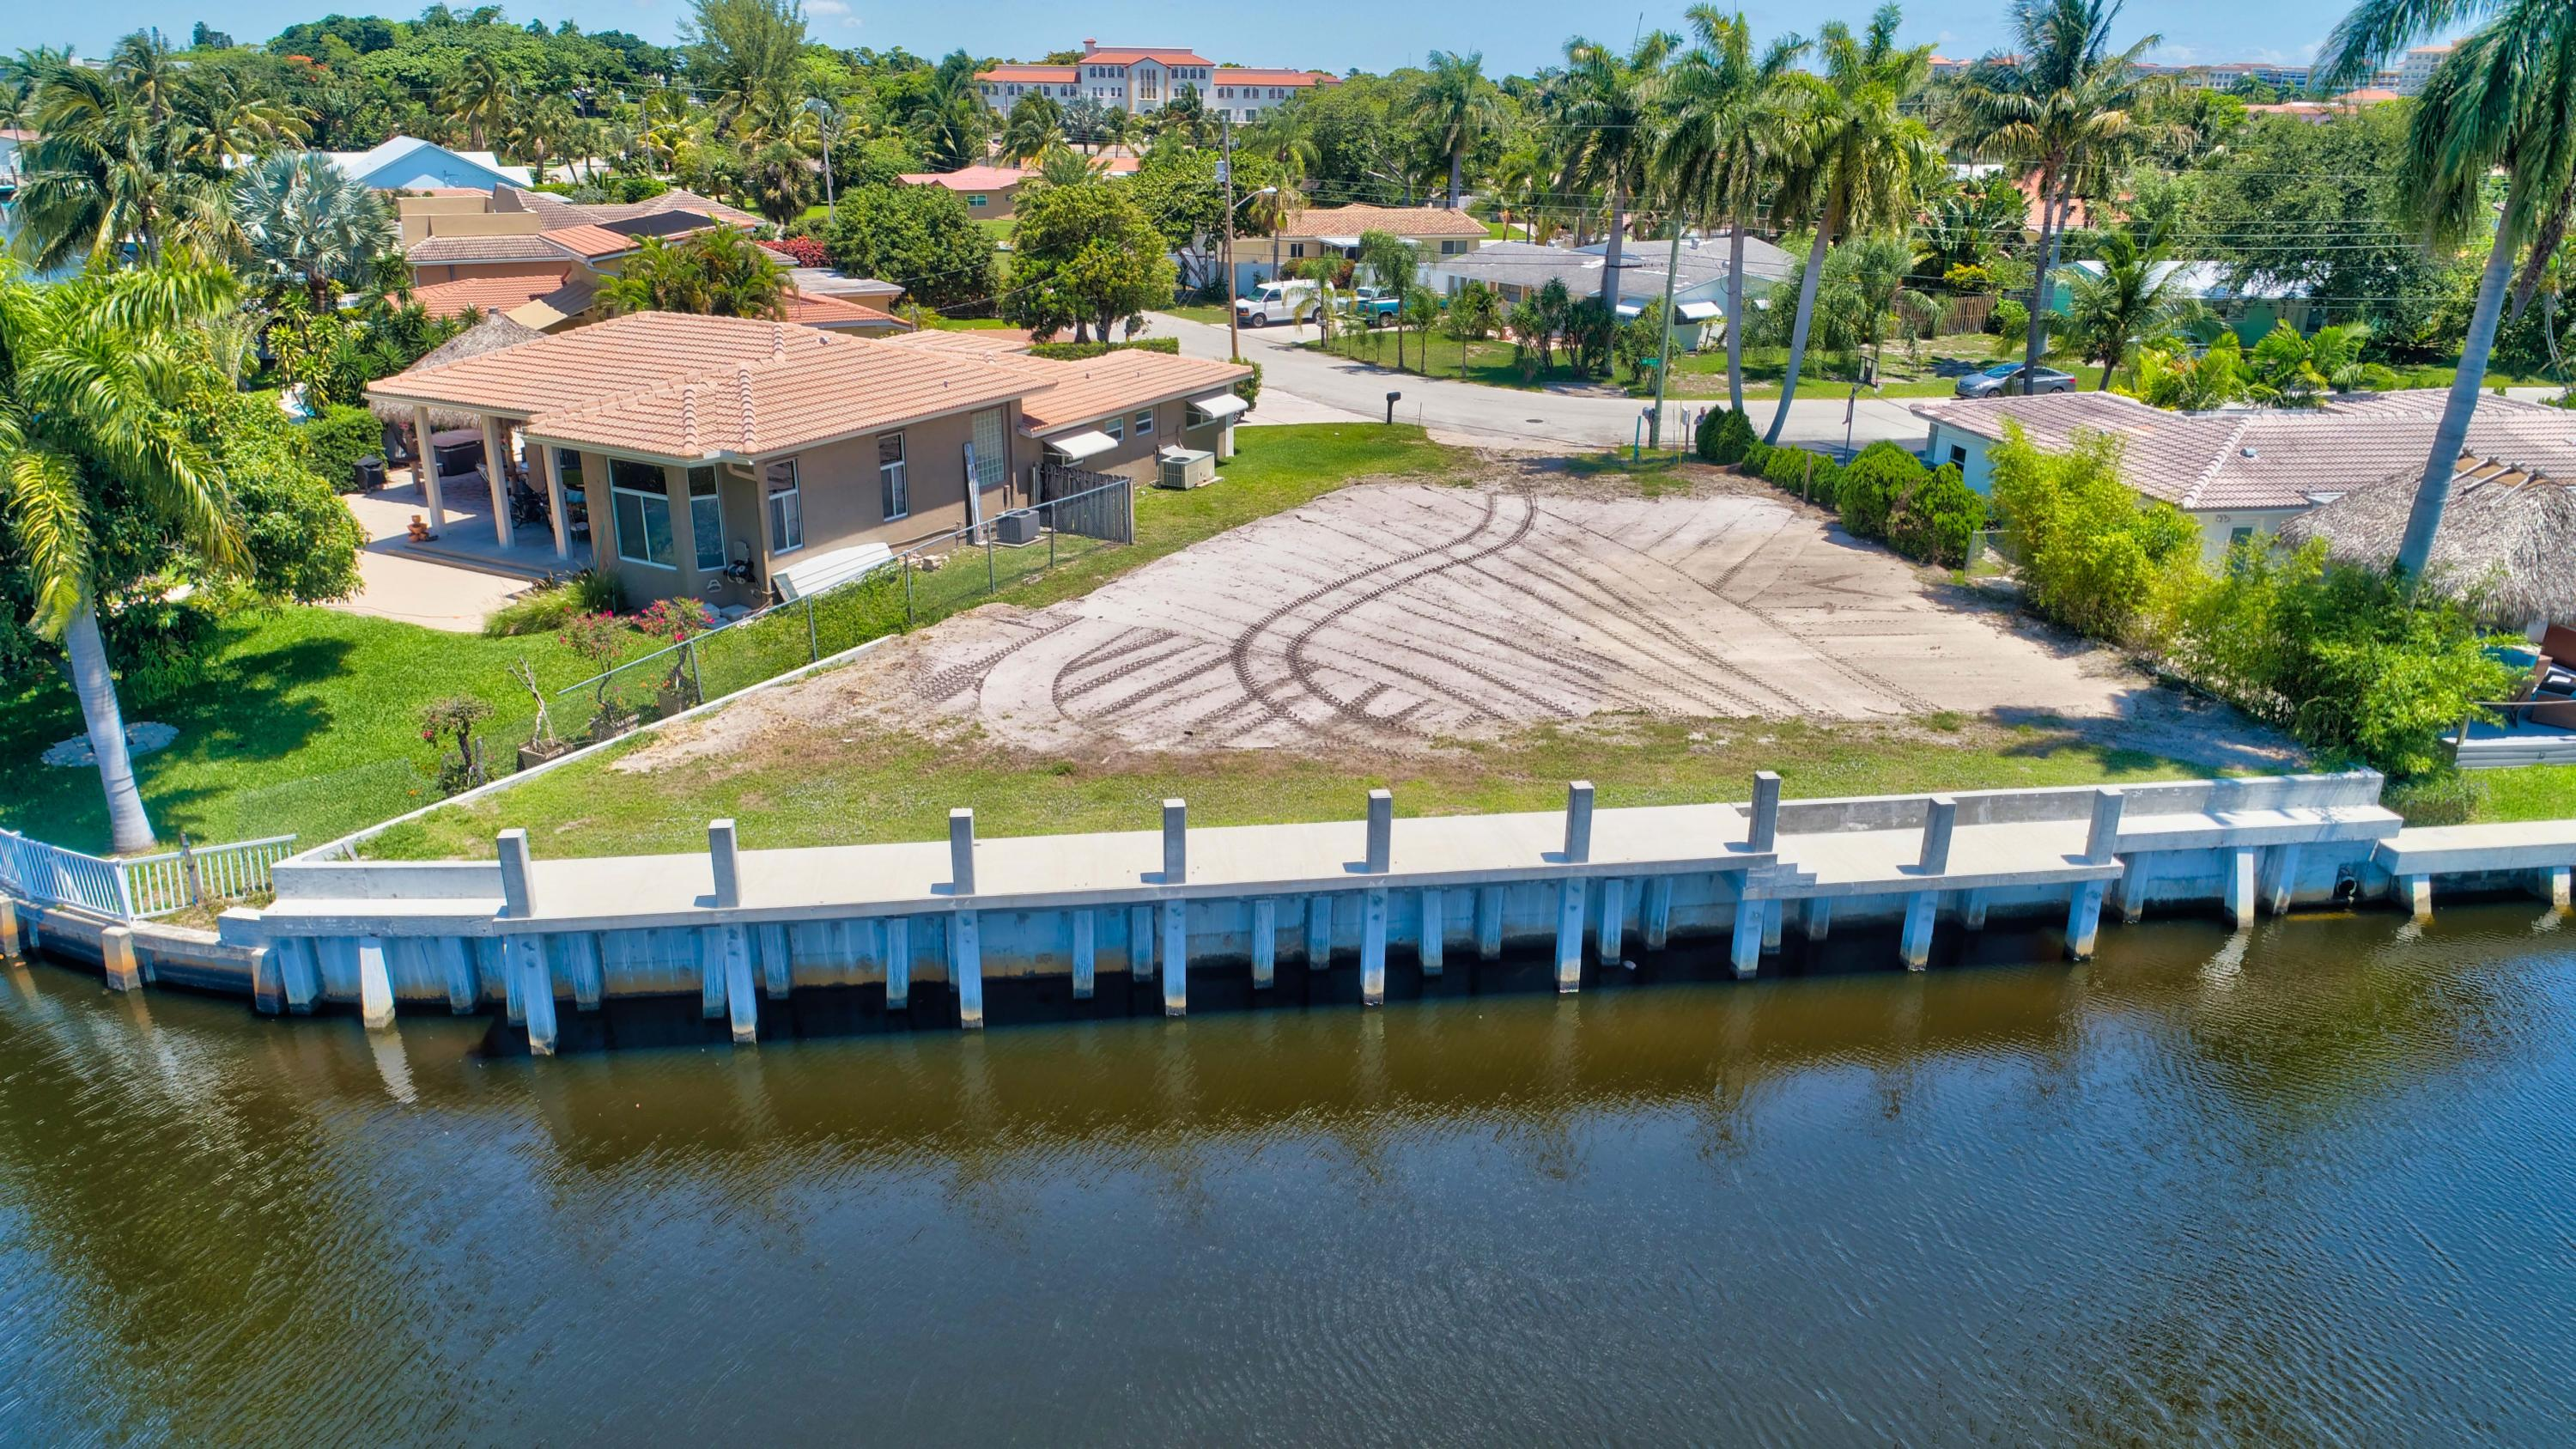 Home for sale in Boca Islands Boca Raton Florida